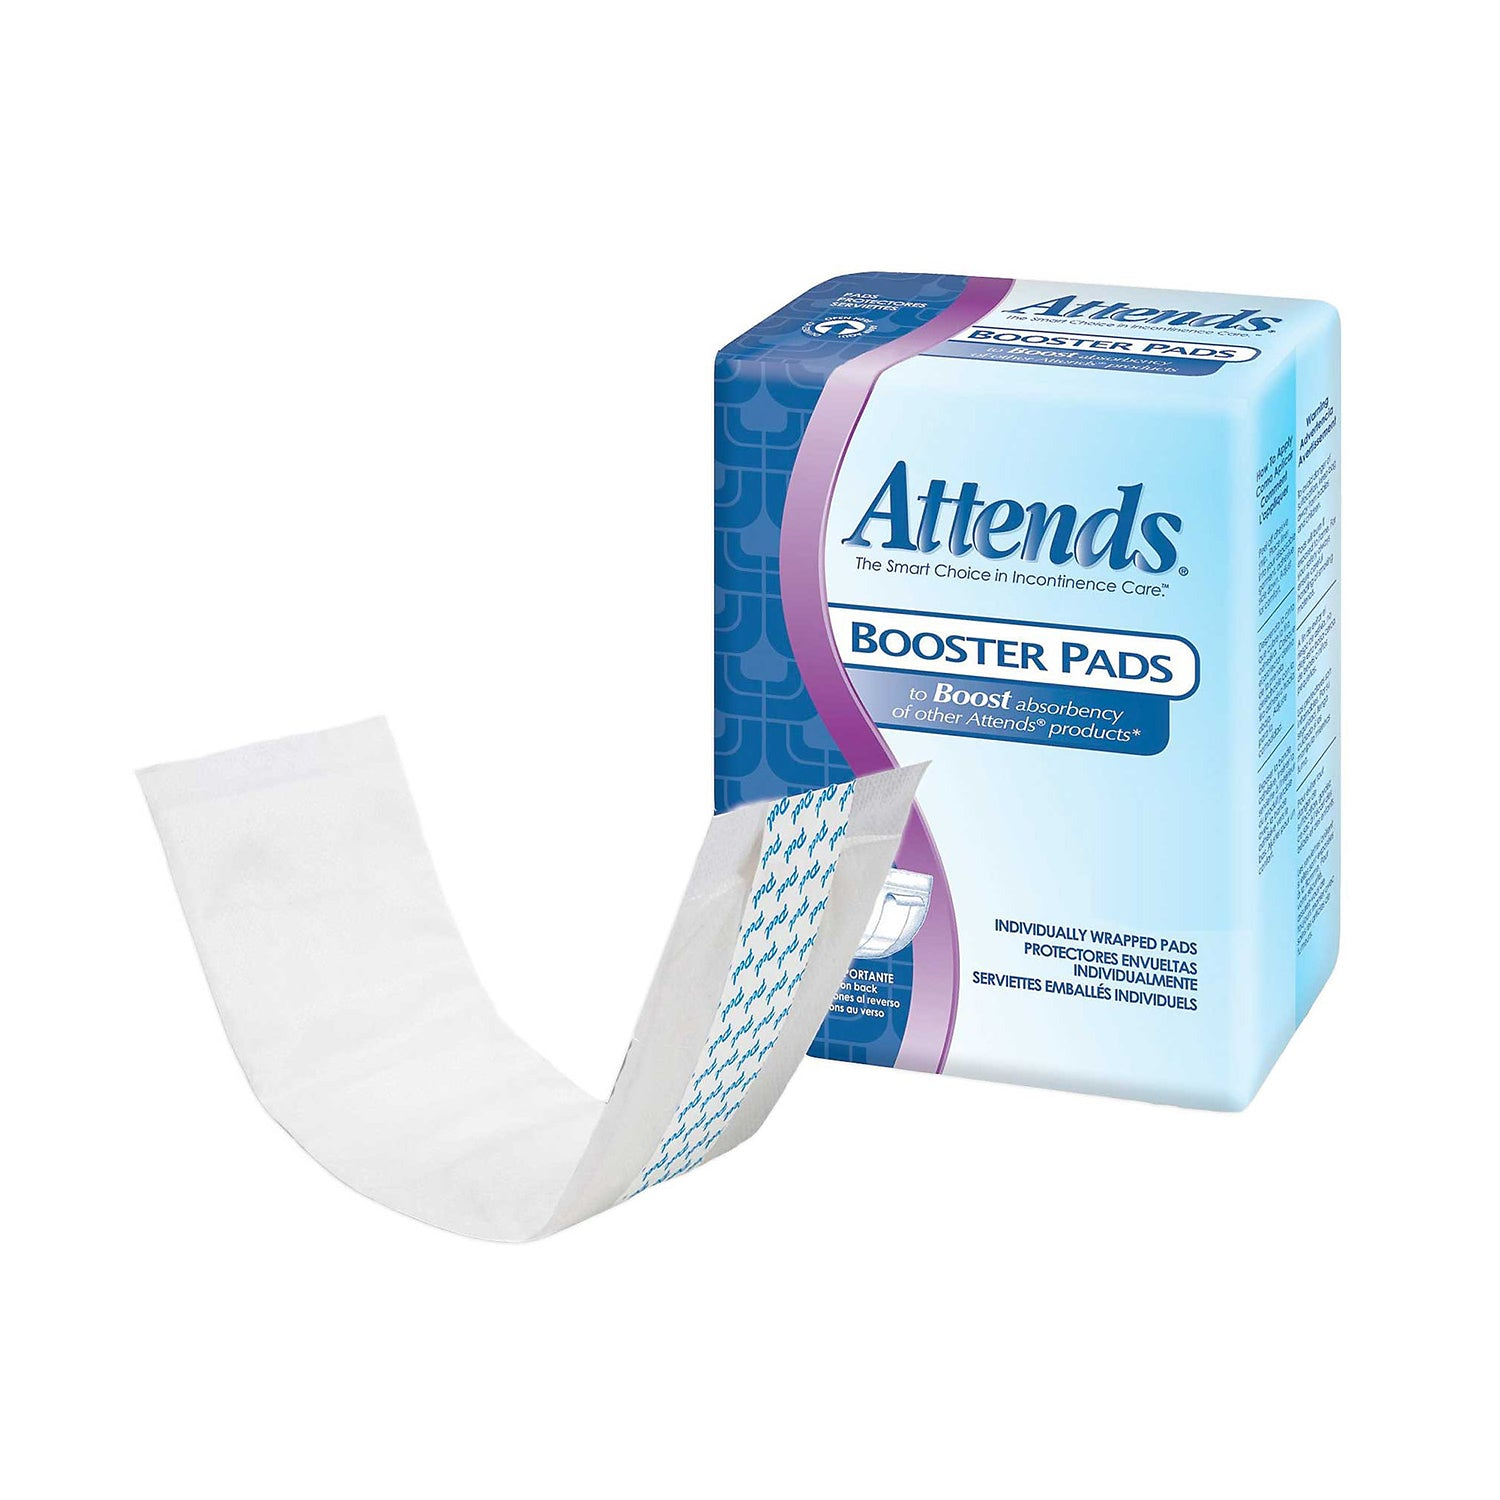 Attends Booster Pads - Pack of 24